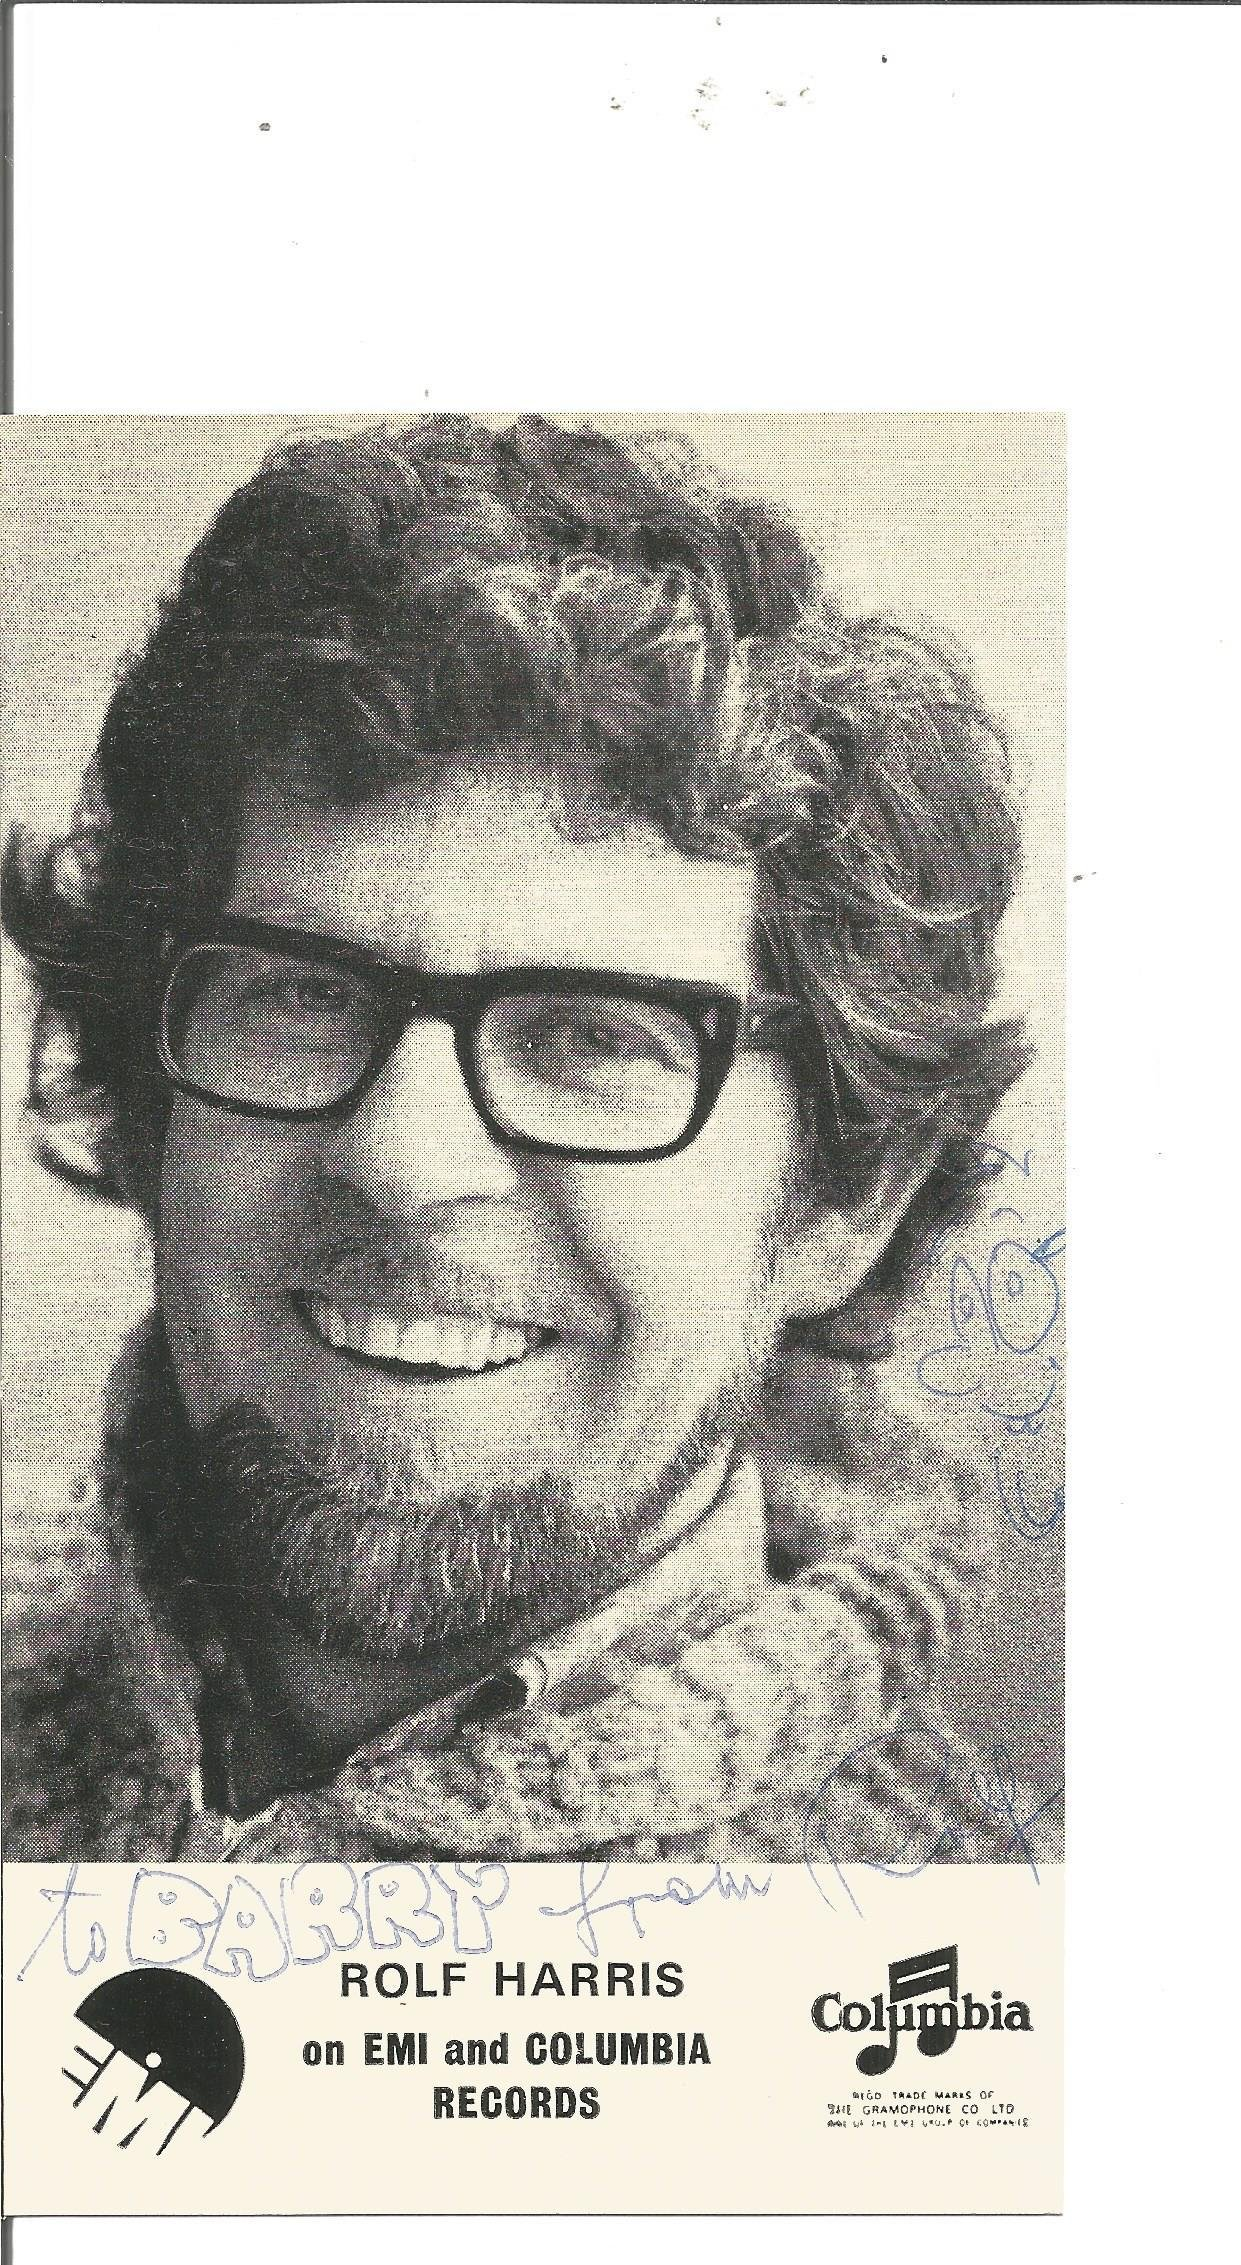 Rolf Harris signed 6x4 black and white photo.